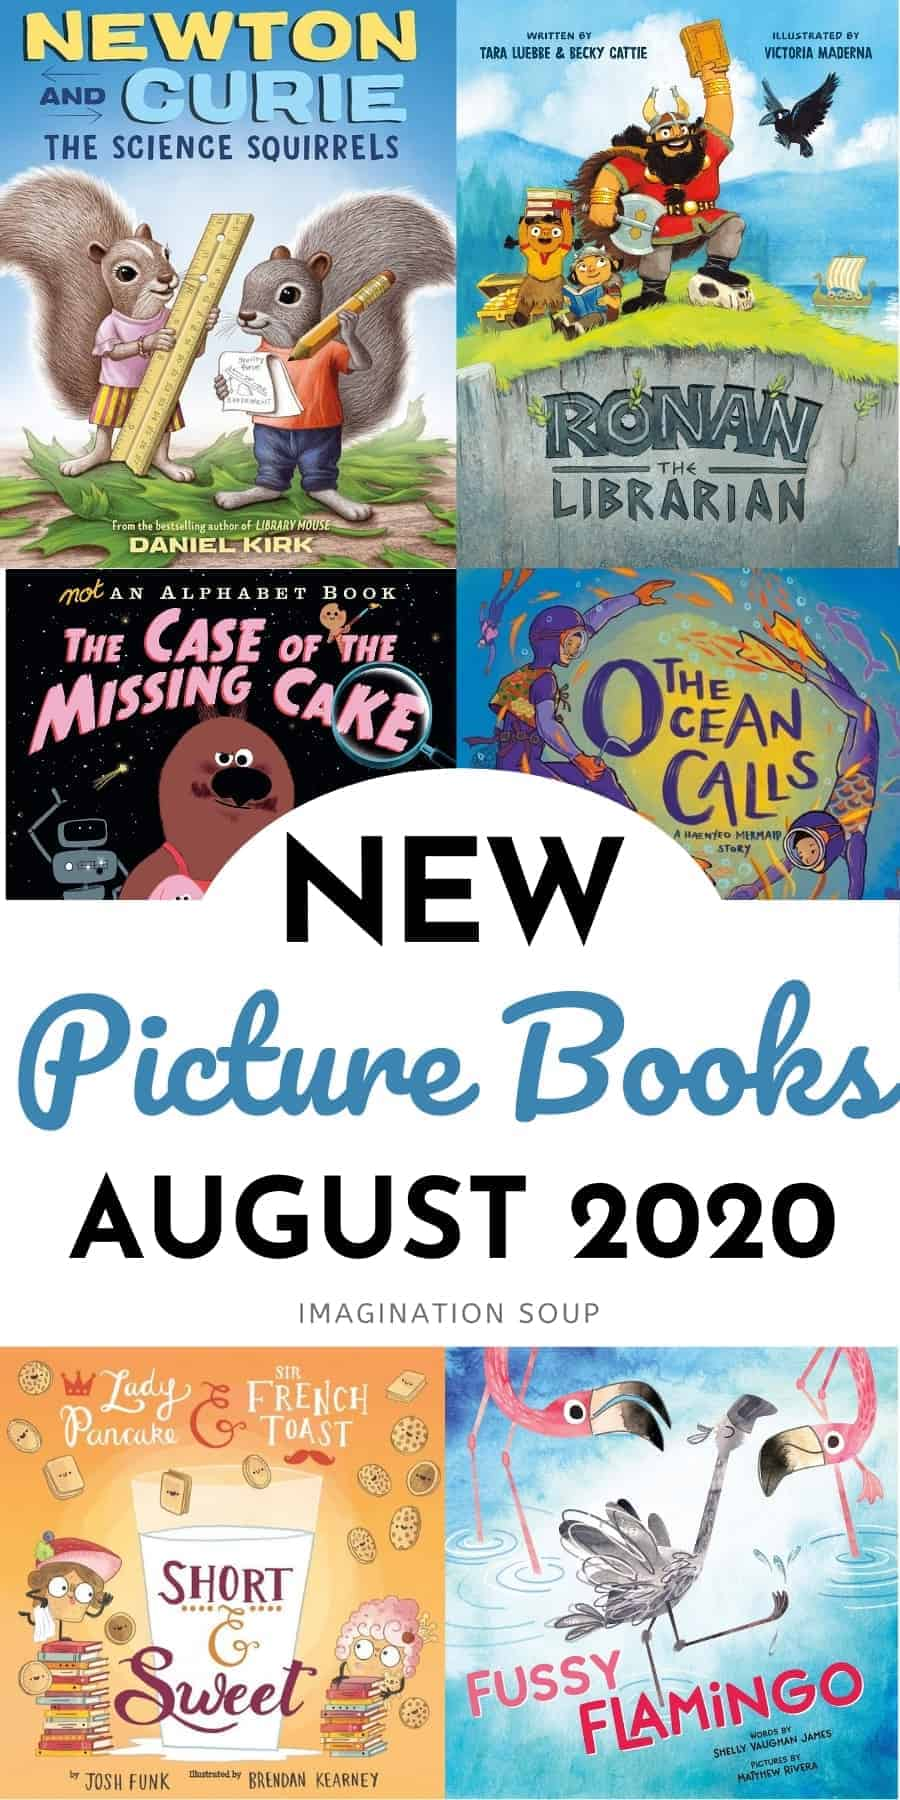 New picture books August 2020